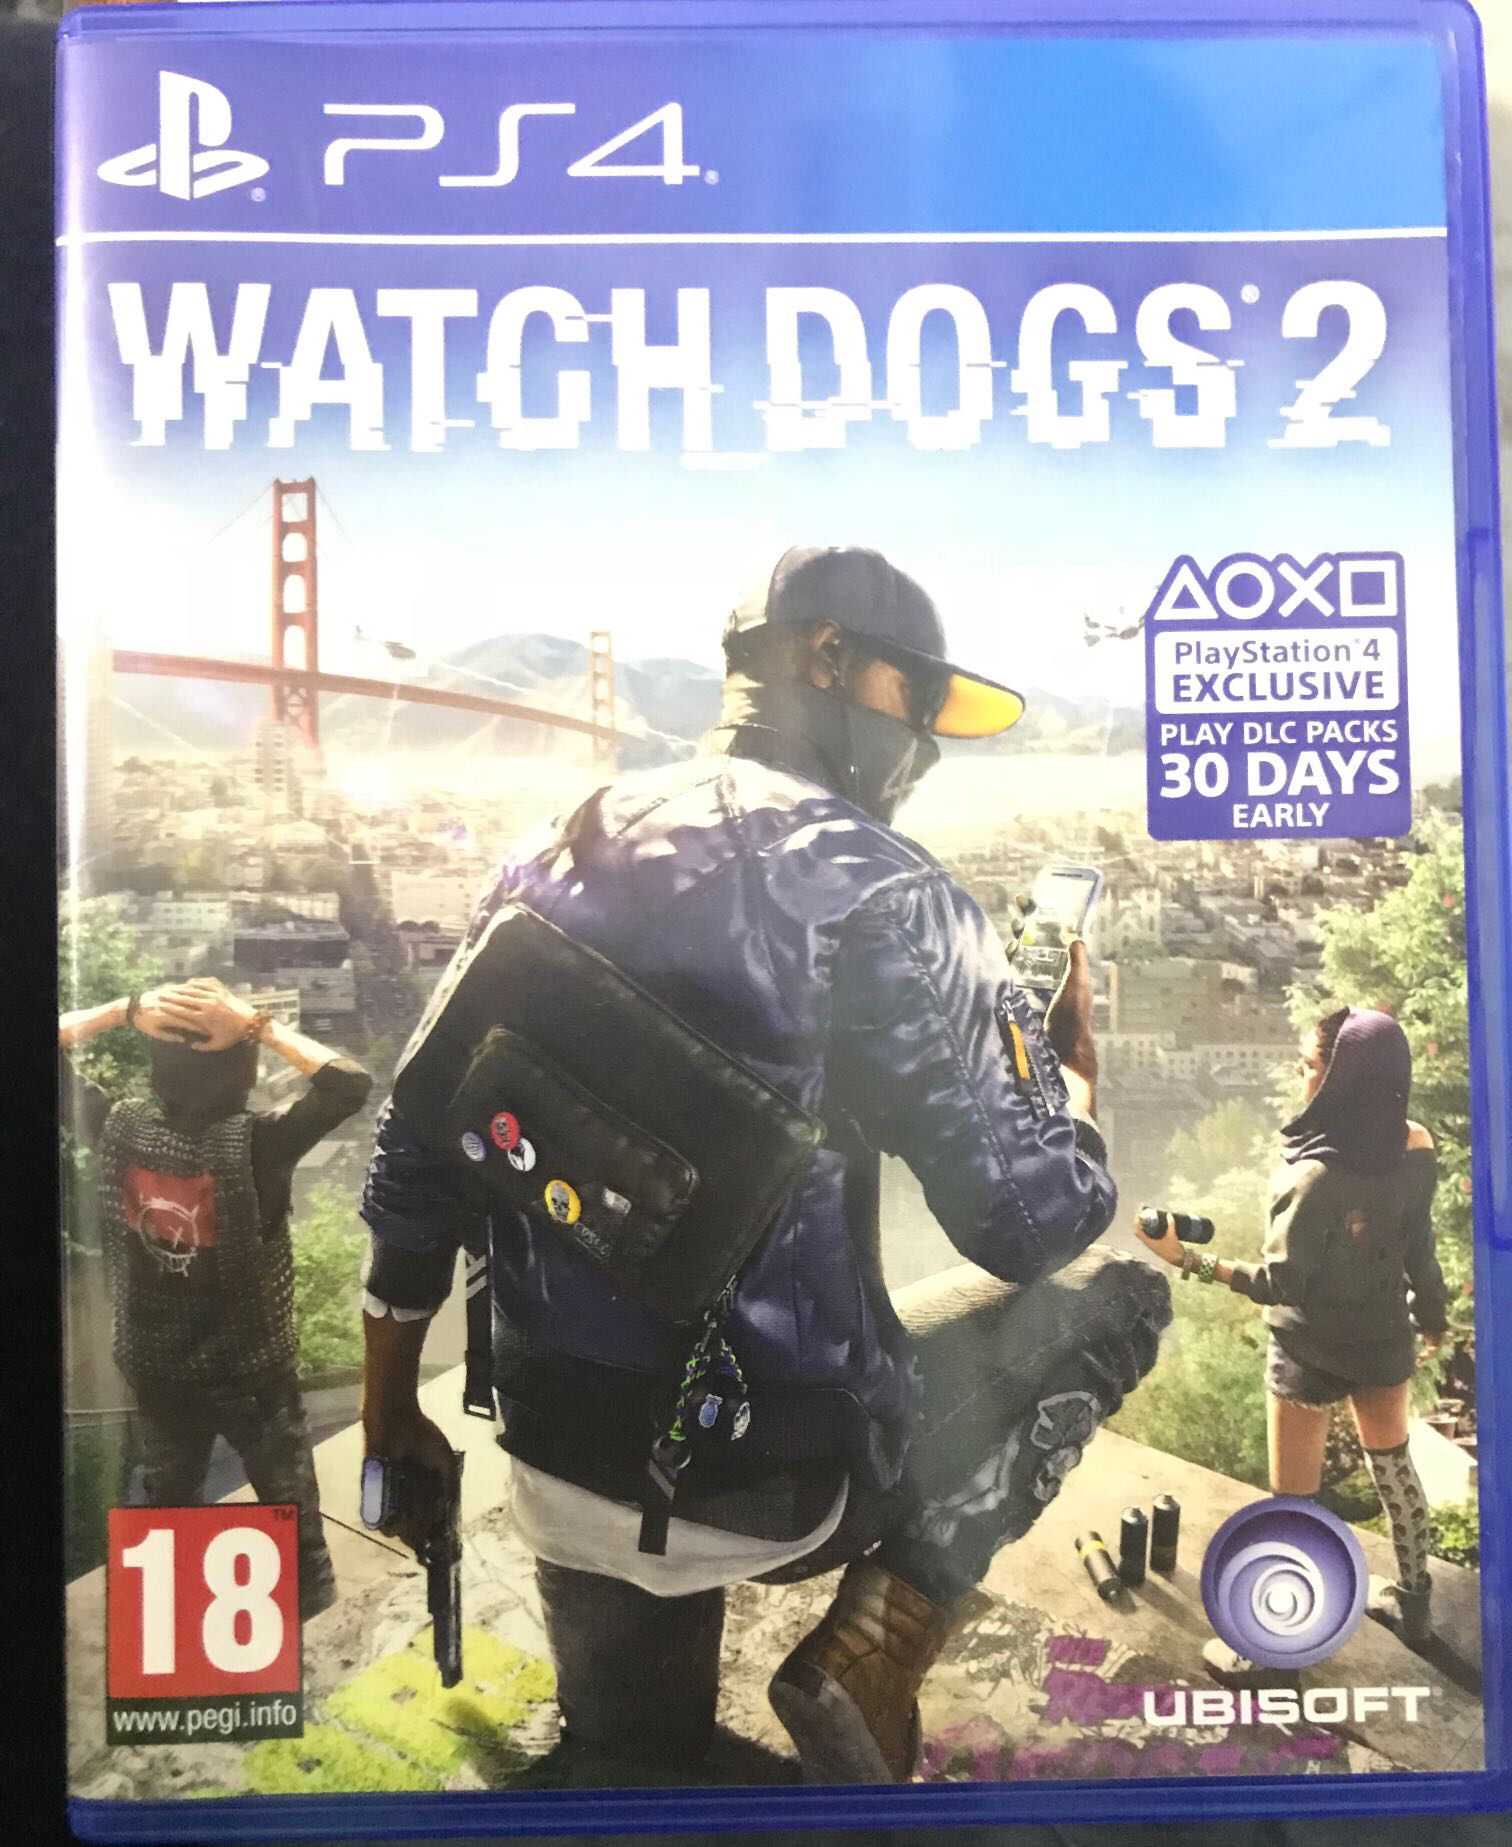 משחק watch dogs 2 ps4 חדש